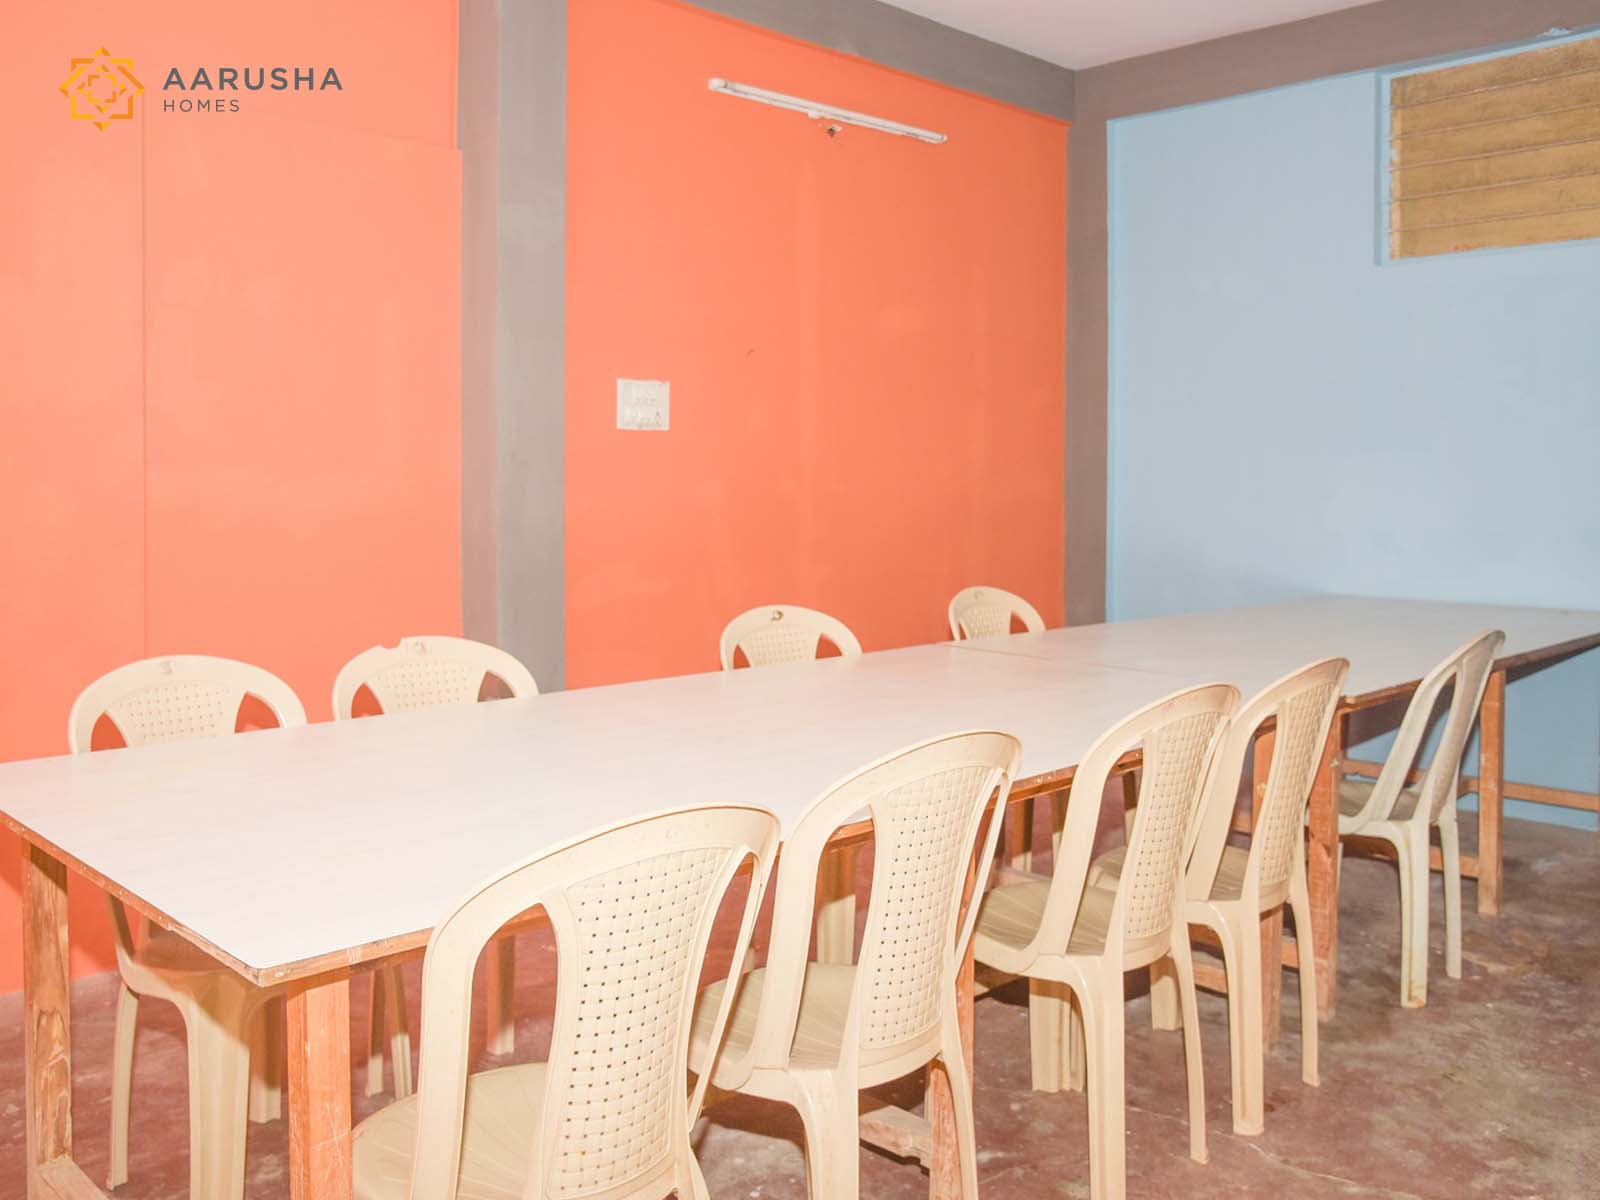 PG & Hostel For Men In HBR Layout, Bangalore